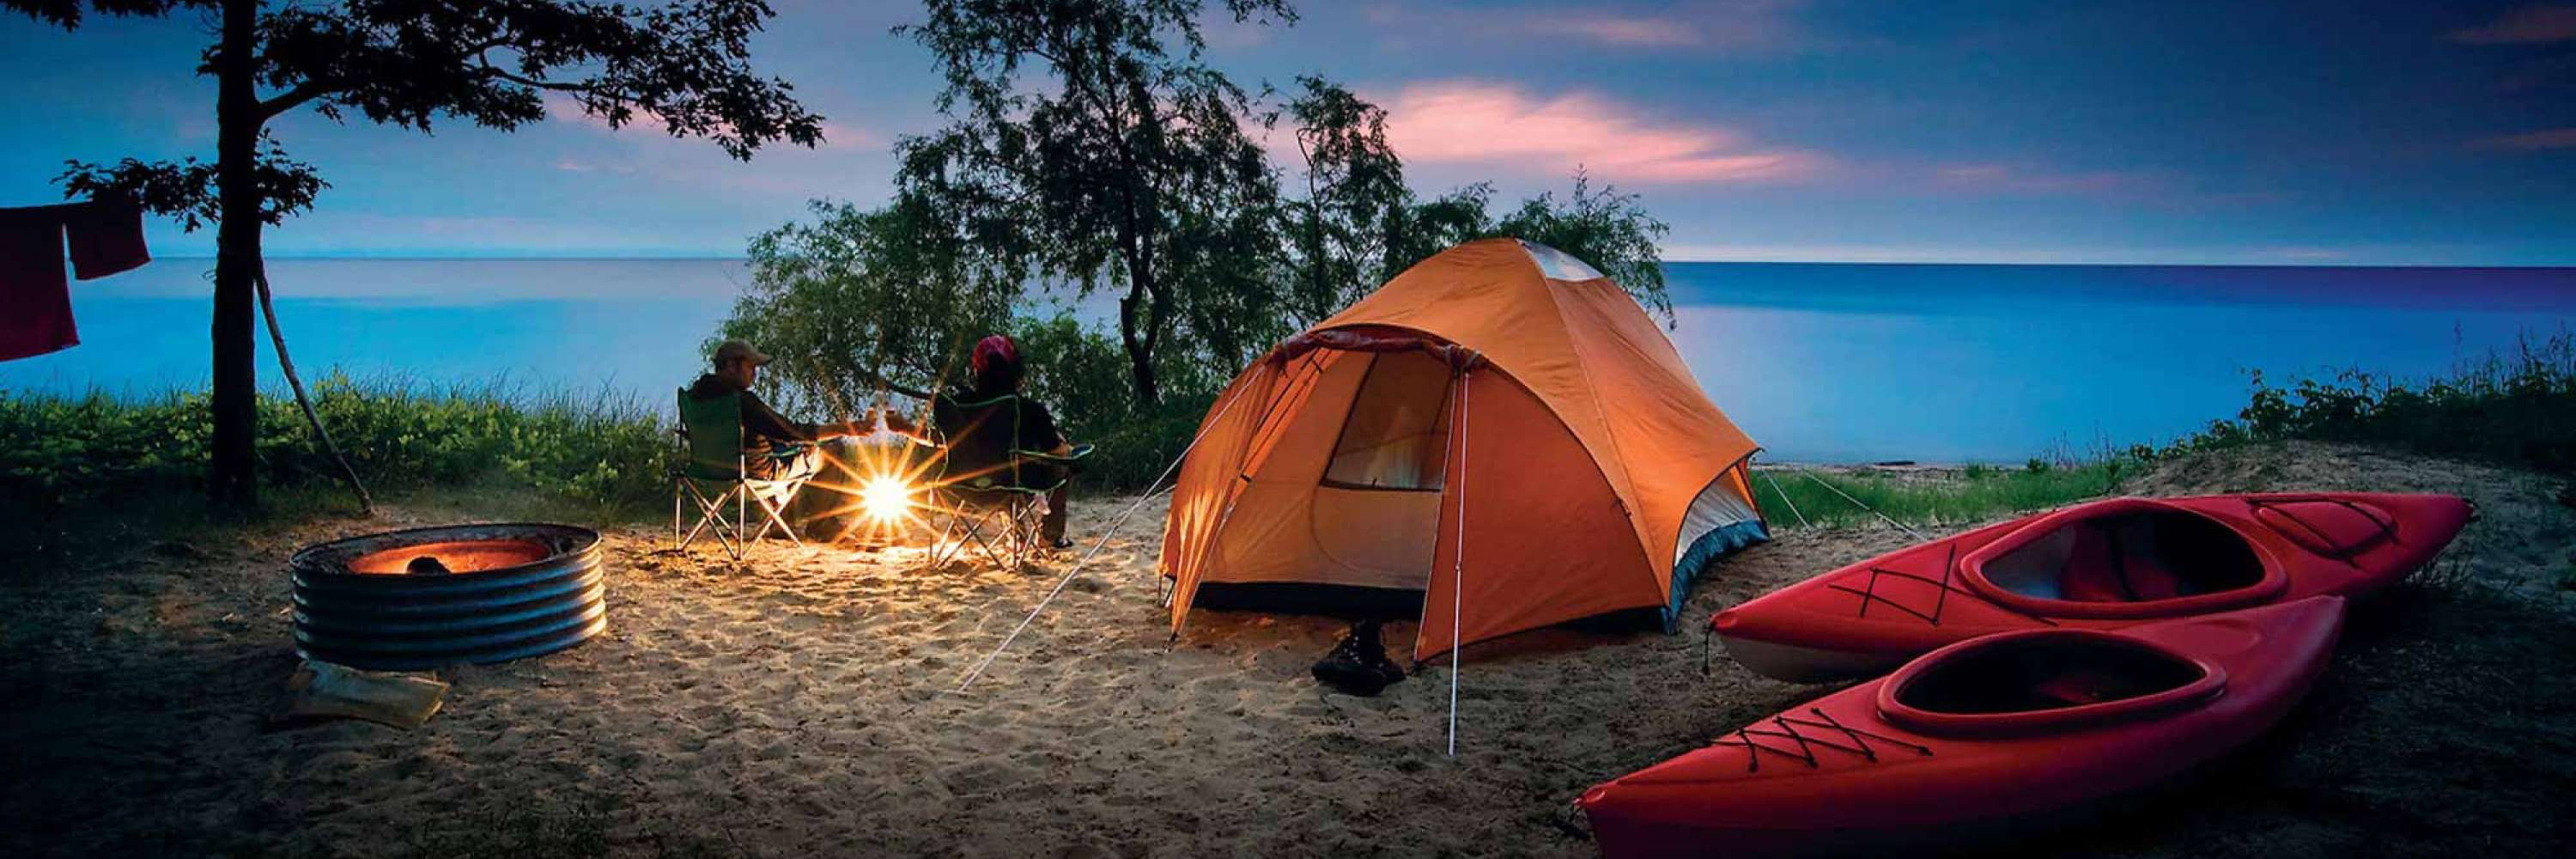 An Essential Piece of Camping Gear of Your Camp Stove